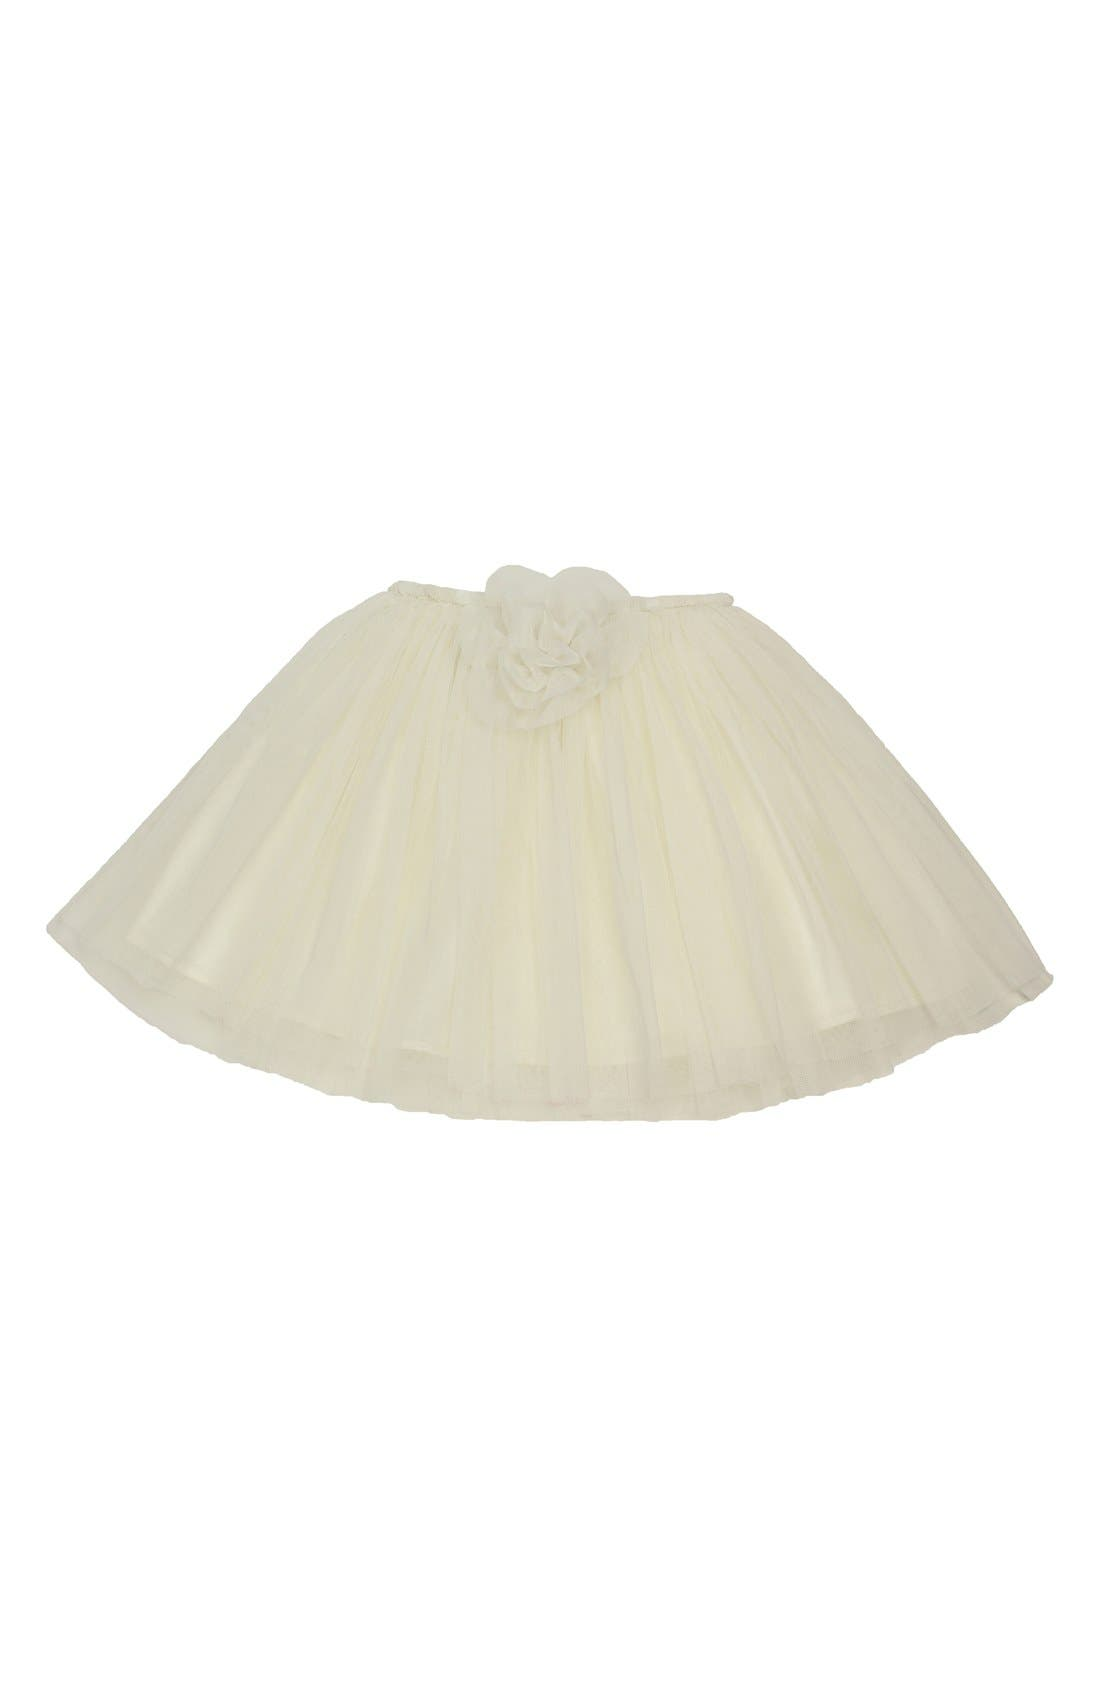 Alternate Image 1 Selected - POCHEW Flower Embellished Tutu (Toddler Girls & Little Girls)